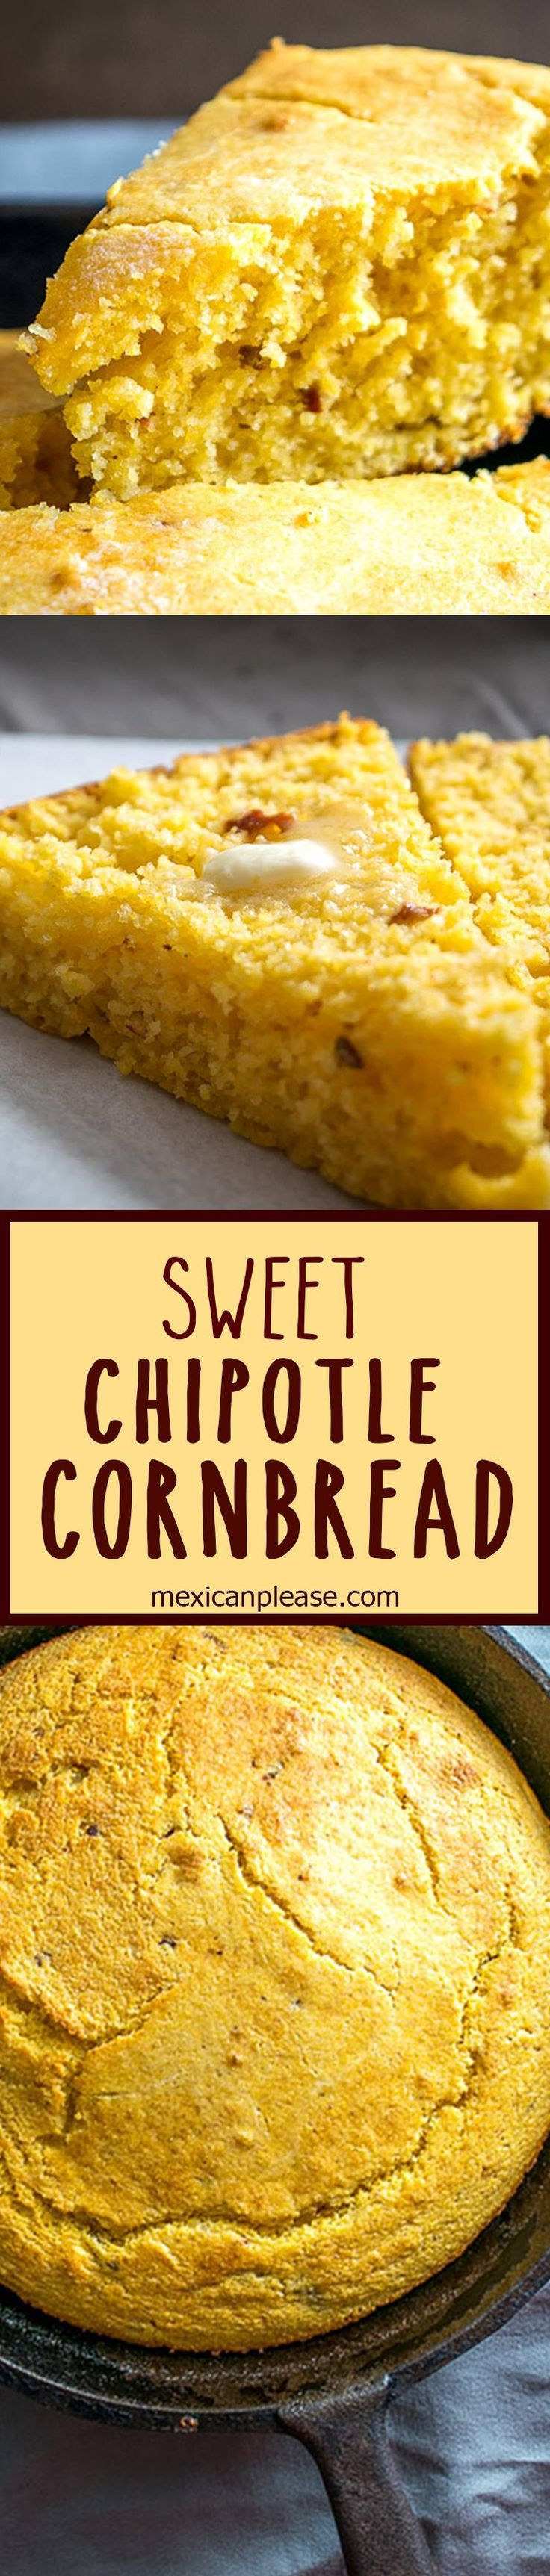 Chipotles give this skillet cornbread the perfect hint of spice.  Permission granted for a generous helping of butter with each slice.  So good! #cornbread http://mexicanplease.com